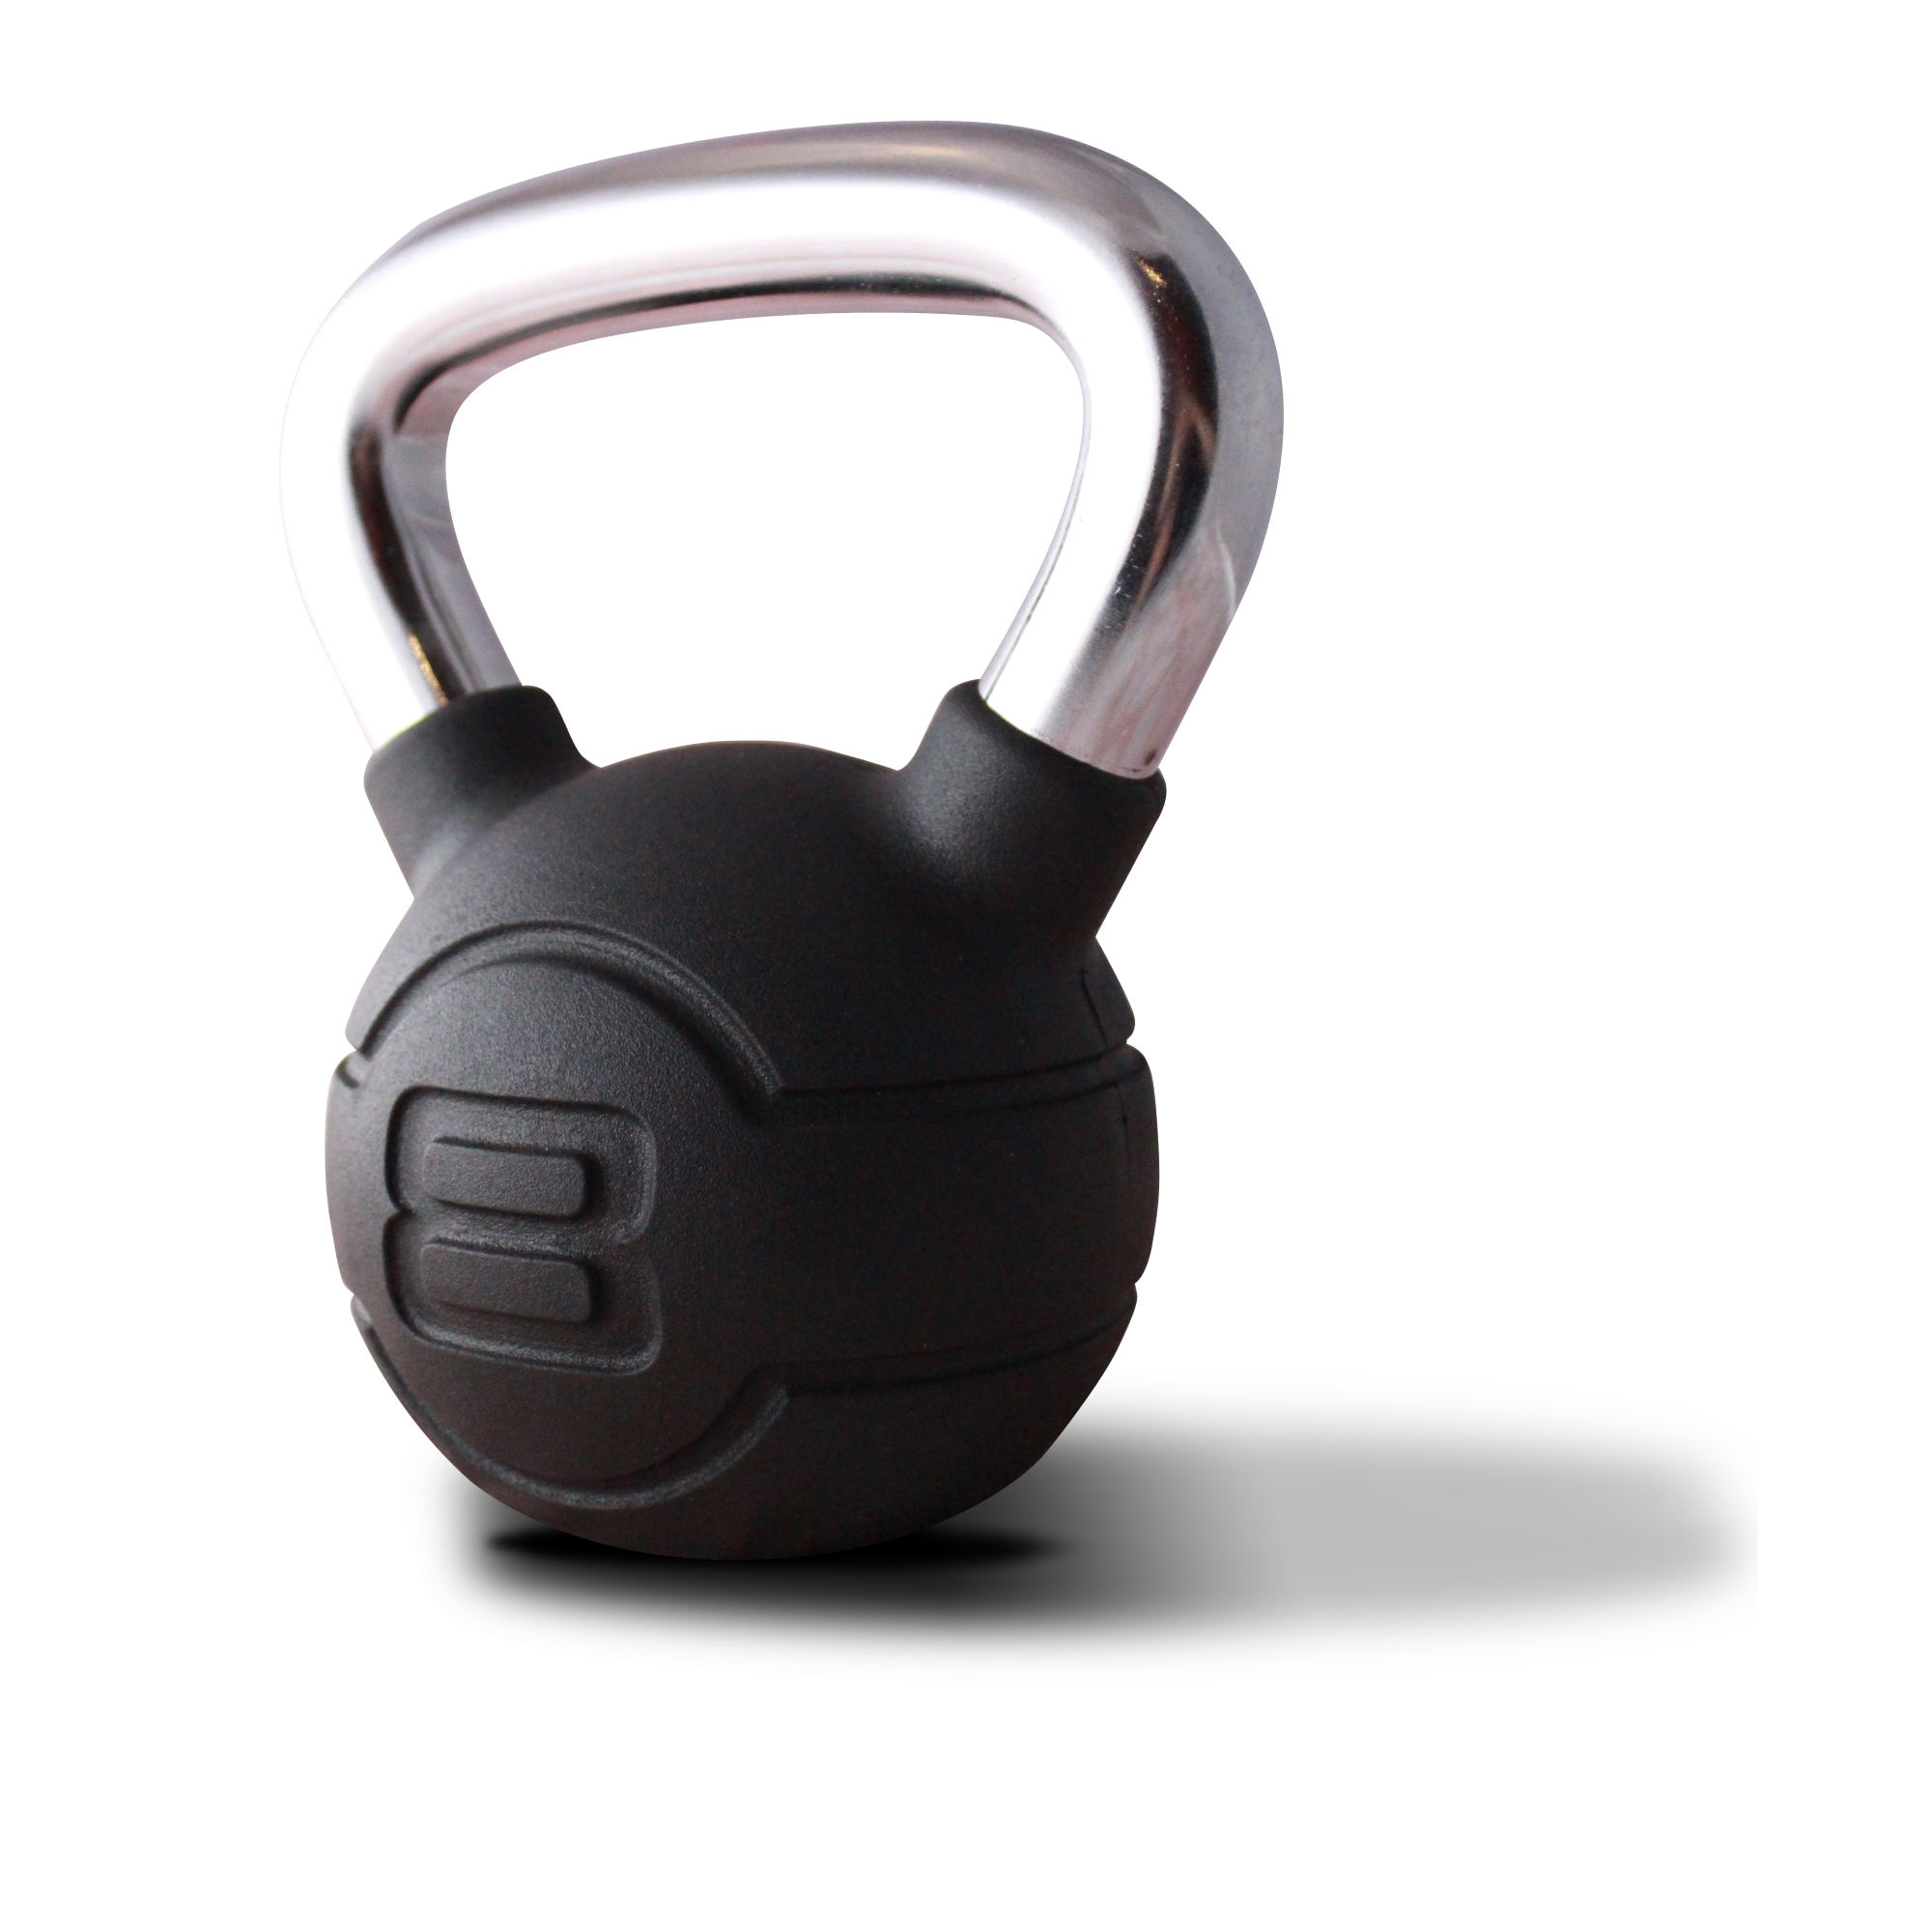 Jordan Black Rubber & Chrome Kettlebell 24kg